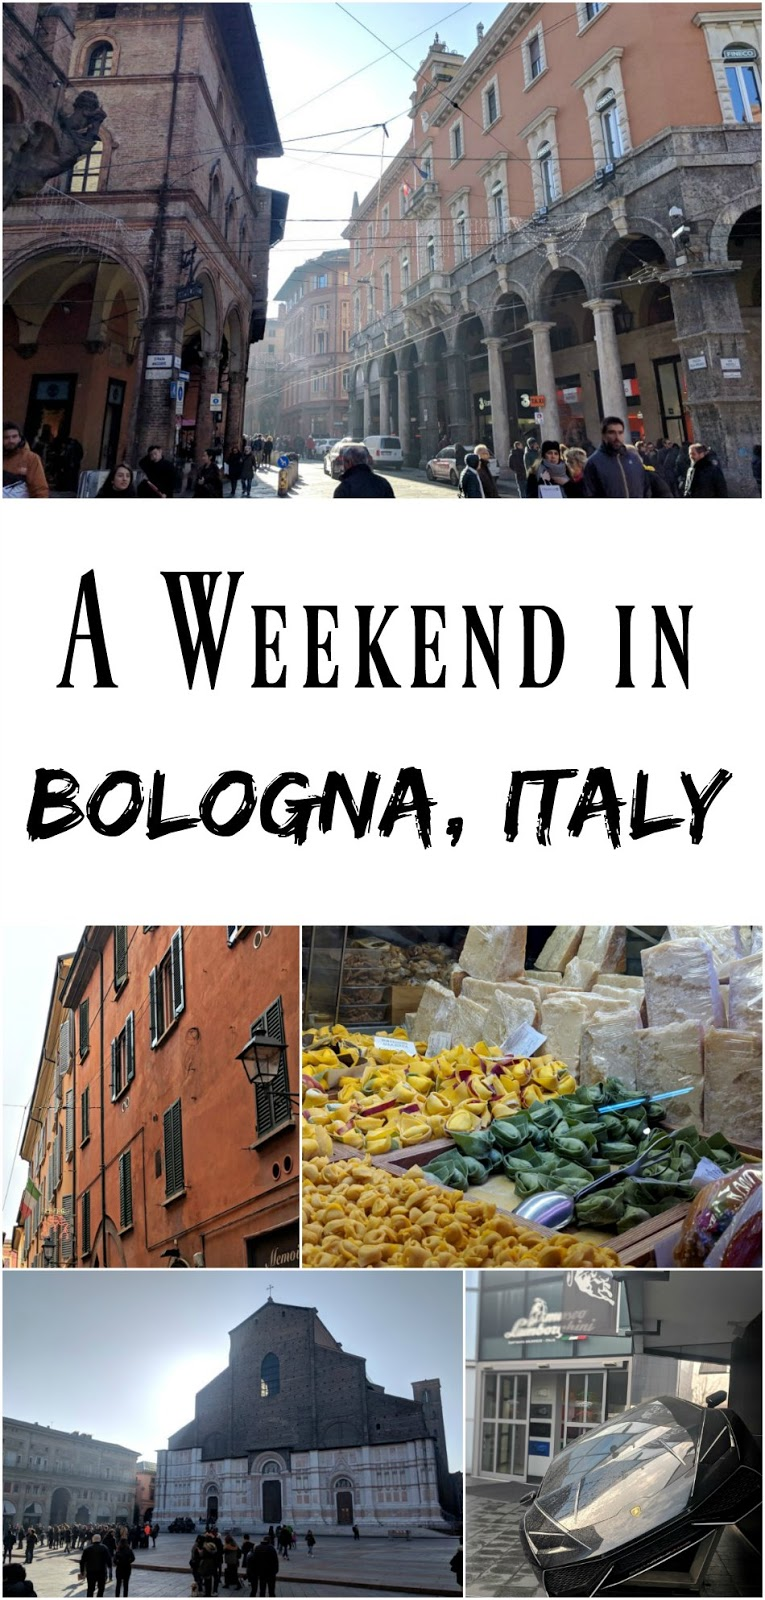 GUIDE: A luxury weekend in Bologna, Italy's prettiest city! Bologna is home to one of the oldest University's in the world, and the oldest in Europe. It's a pretty city with almost 40km of Porticoes, plenty to see and do, and a thriving foodie scene.